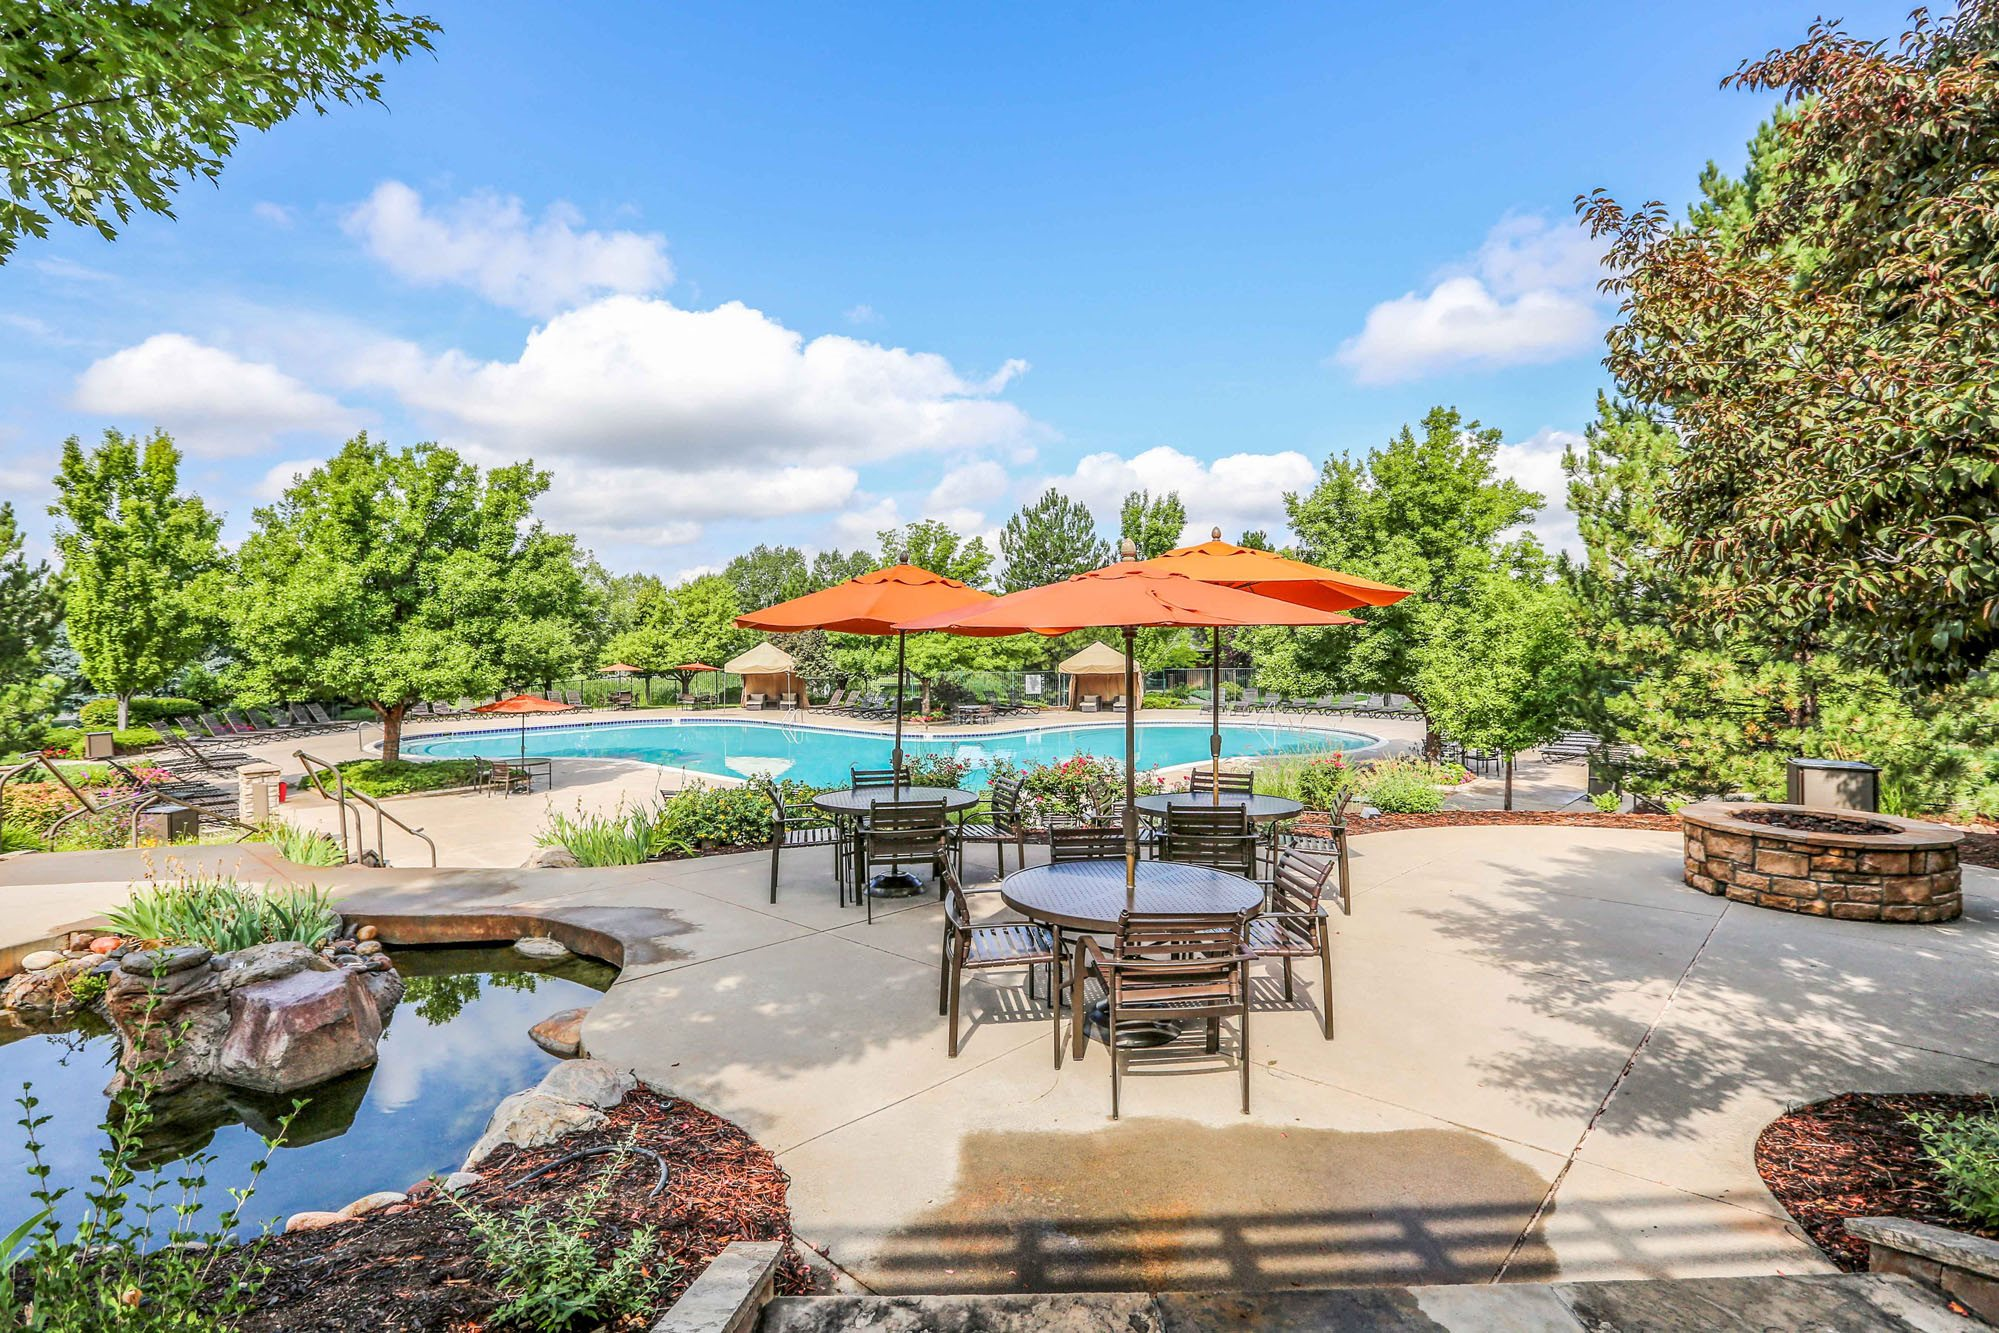 Luxury Apartments in Highlands Ranch, CO - Palomino Park Resort Style Poolside Lounge With Shaded Seating and Firepit